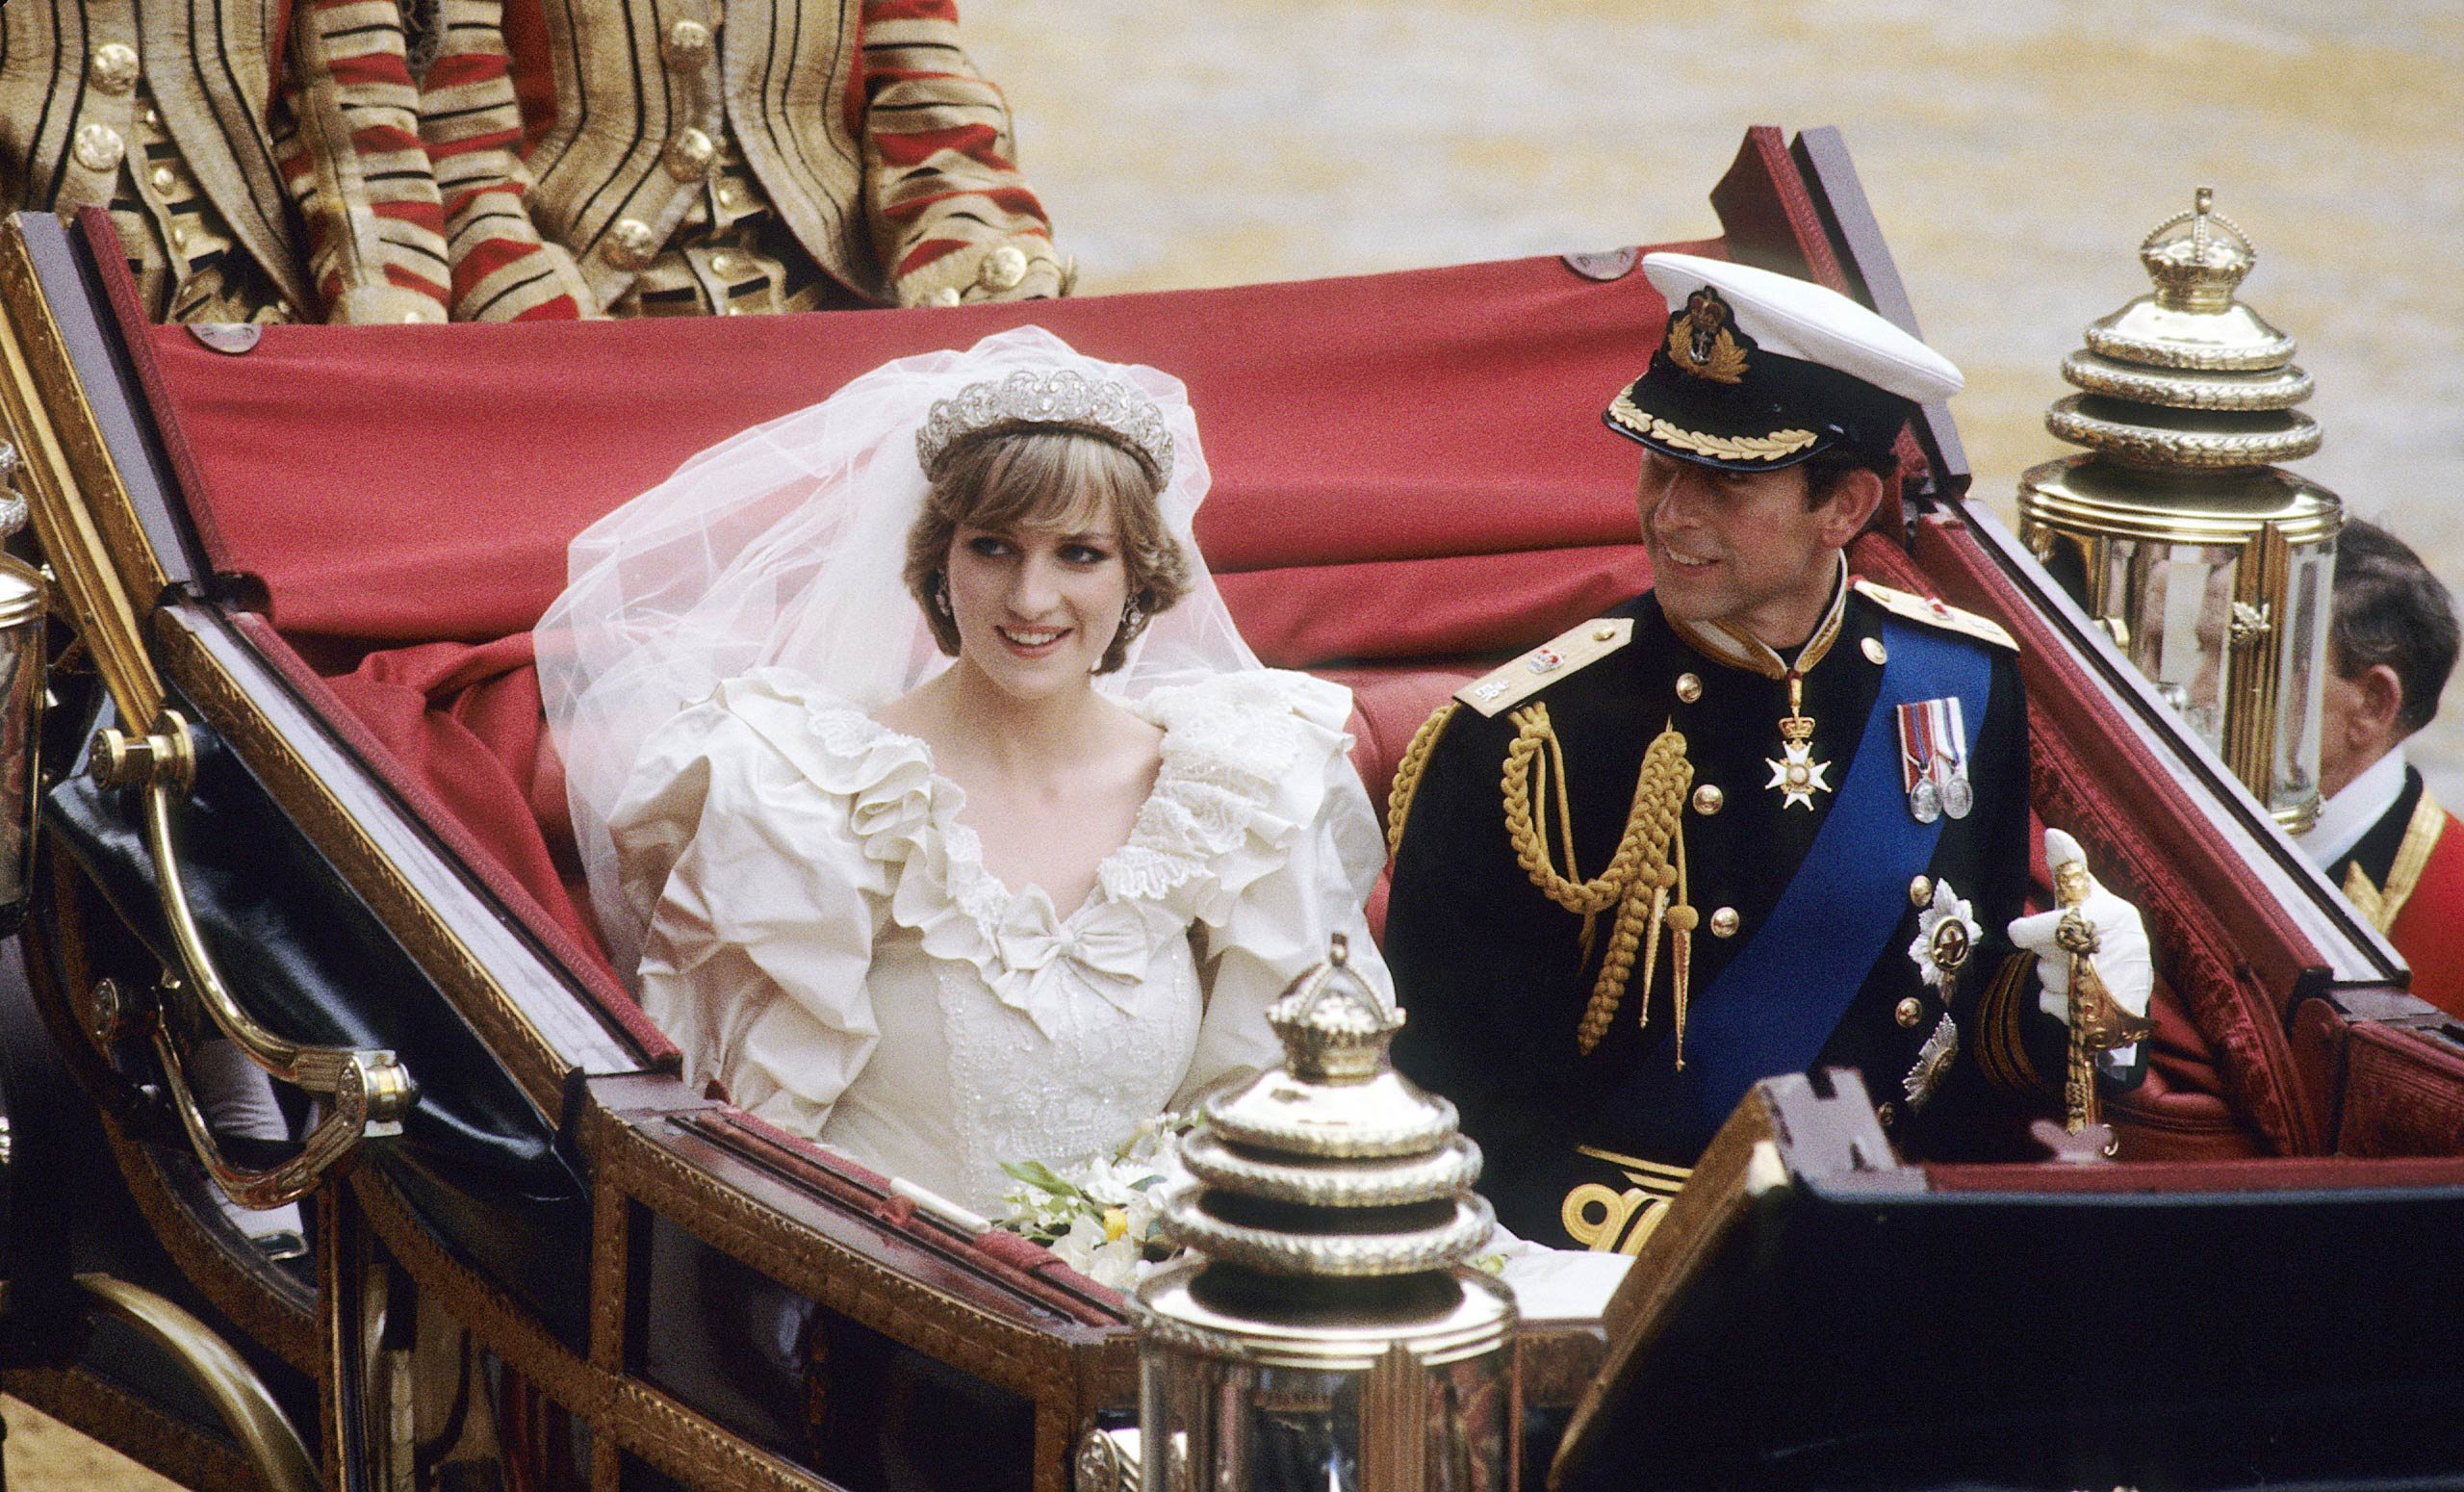 Diana, Princess of Wales and Prince Charles ride in a carriage after their wedding at St. Paul's Cathedral July 29, 1981 in London.